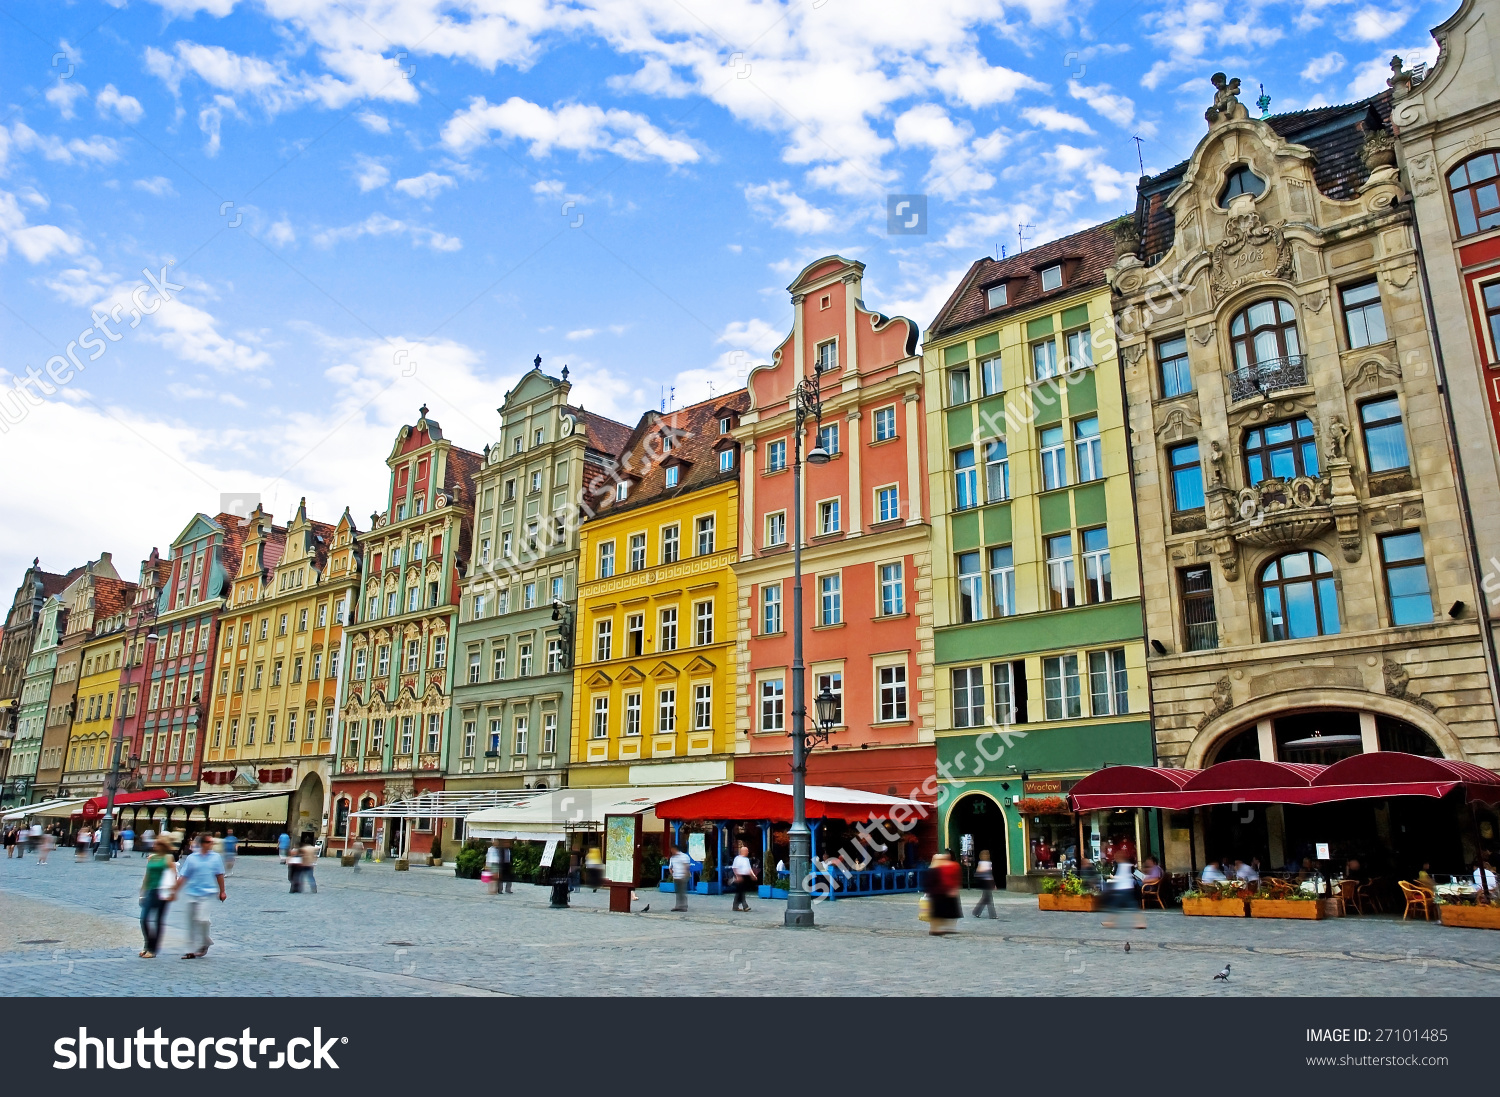 Market Square Wroclaw Poland Stock Photo 27101485.